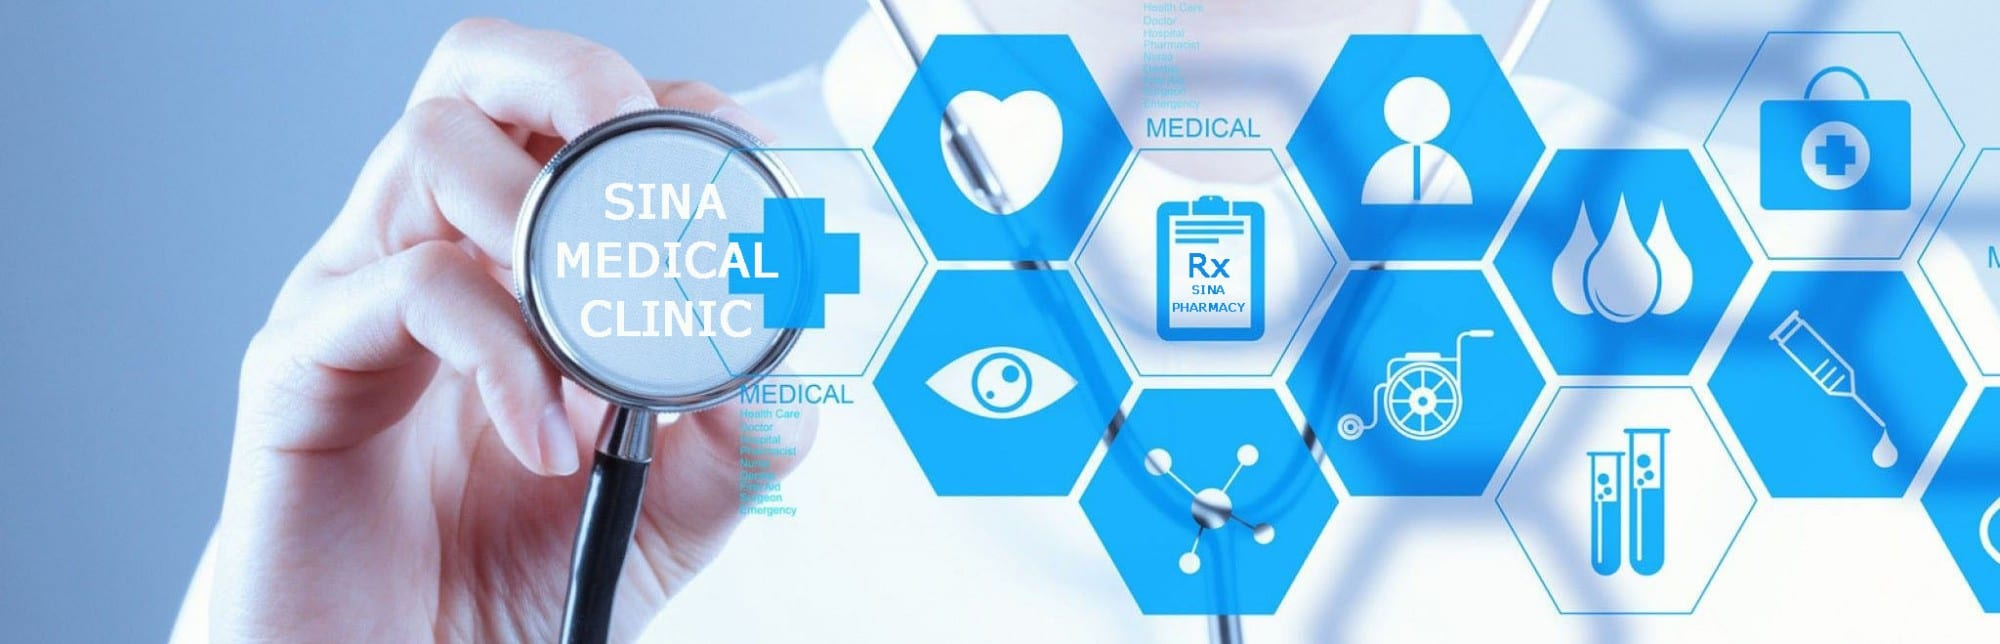 Sina Medical Clinic Header